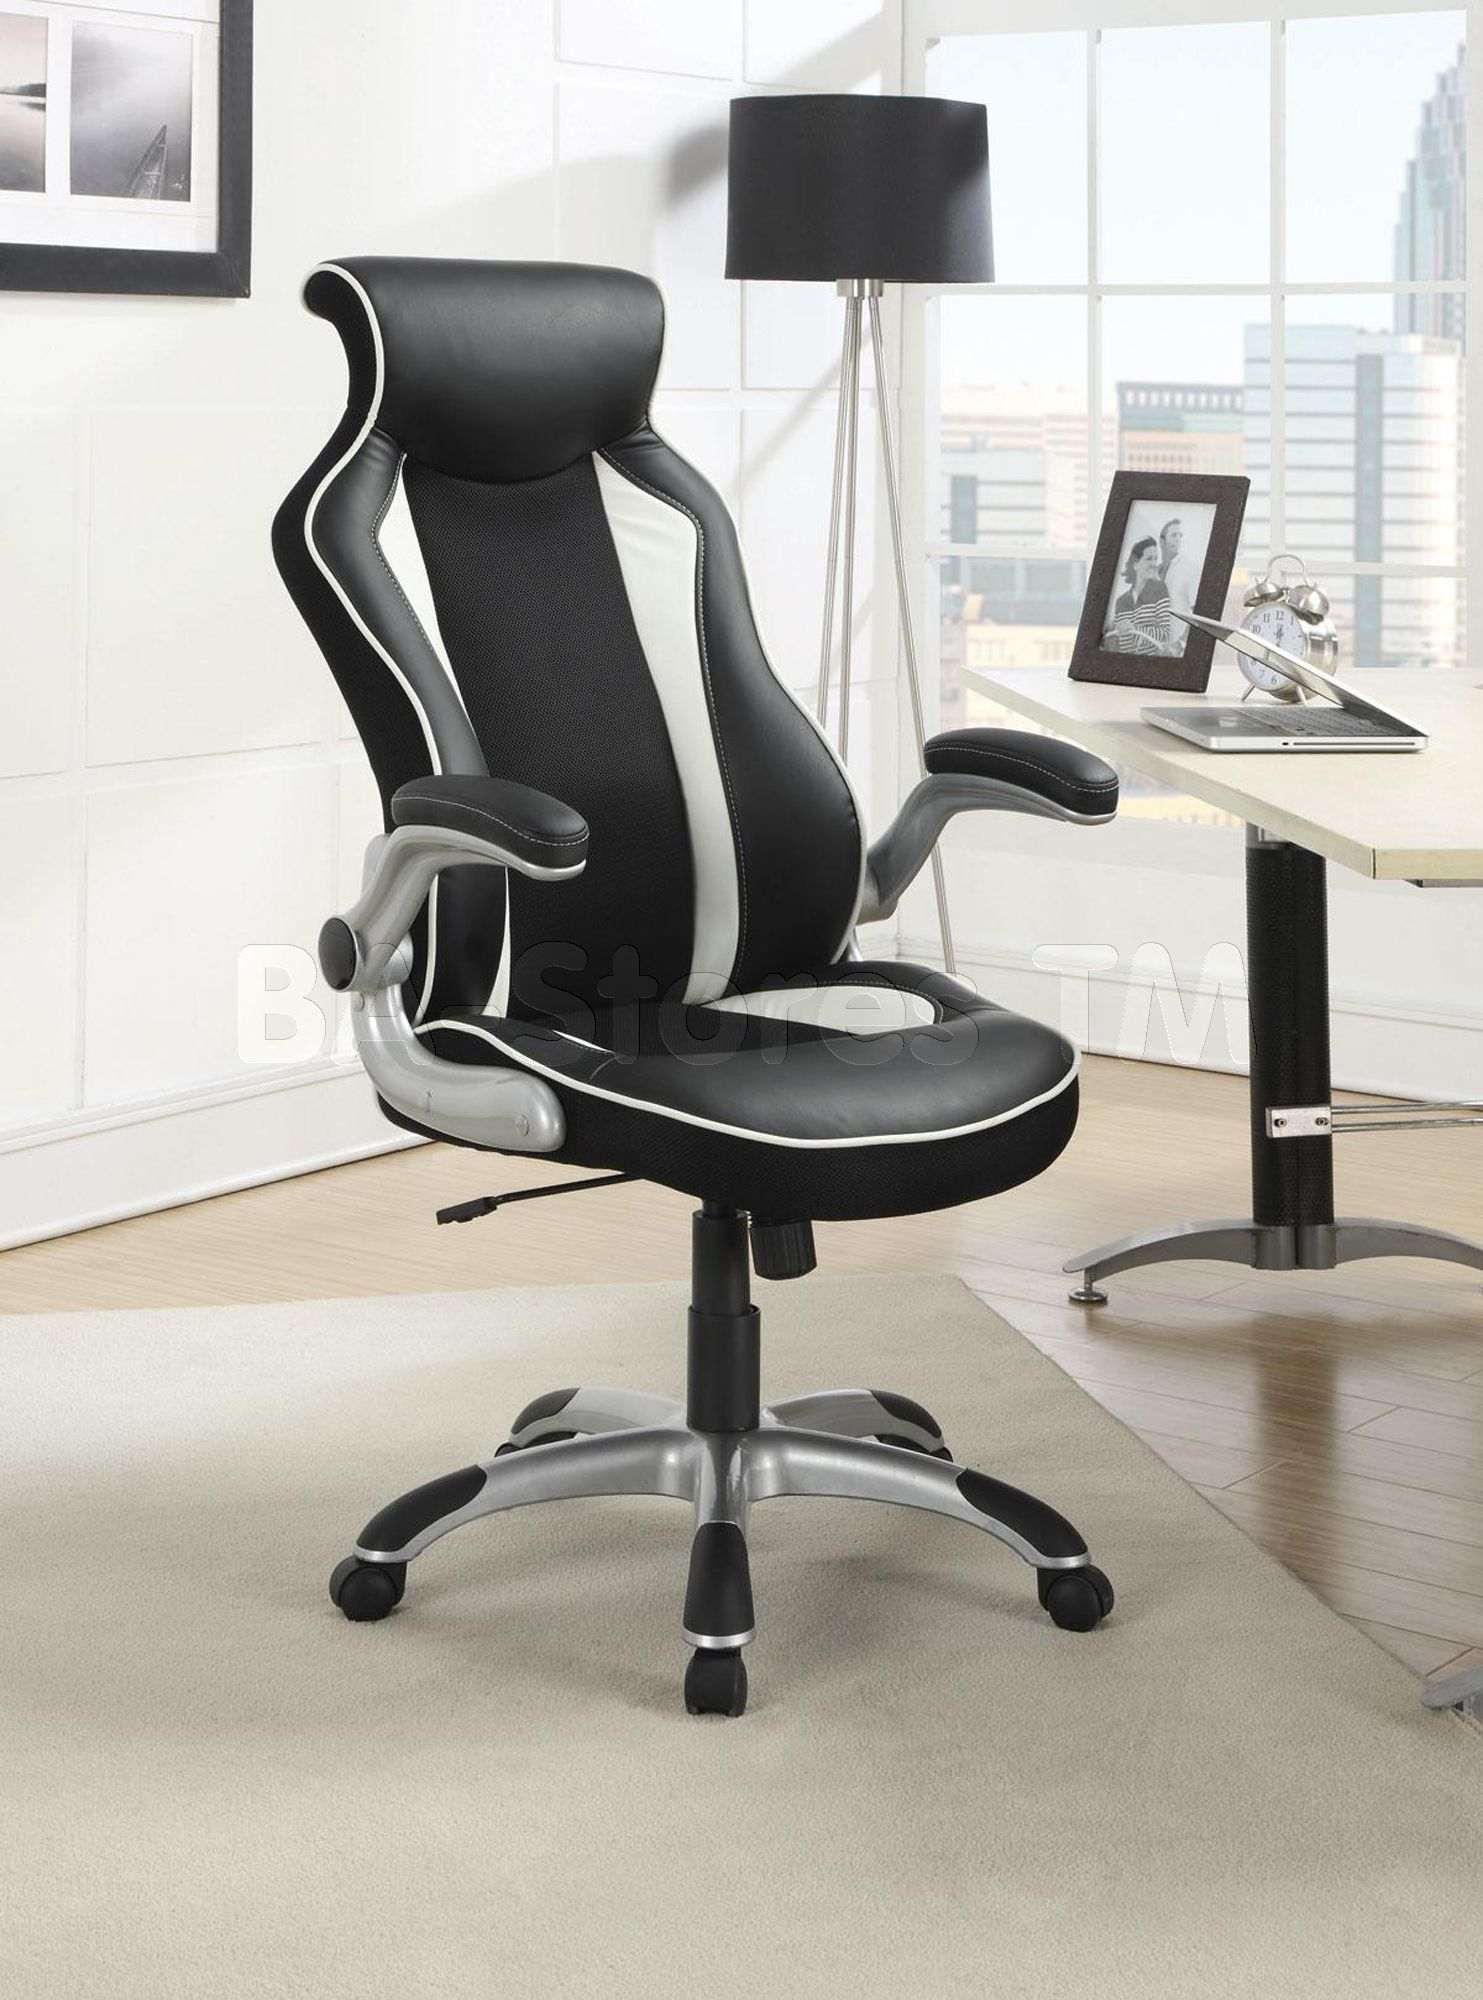 Office Chair With A Stylish Race Car Seat Design White Office Chair Contemporary Office Chairs Black Office Chair